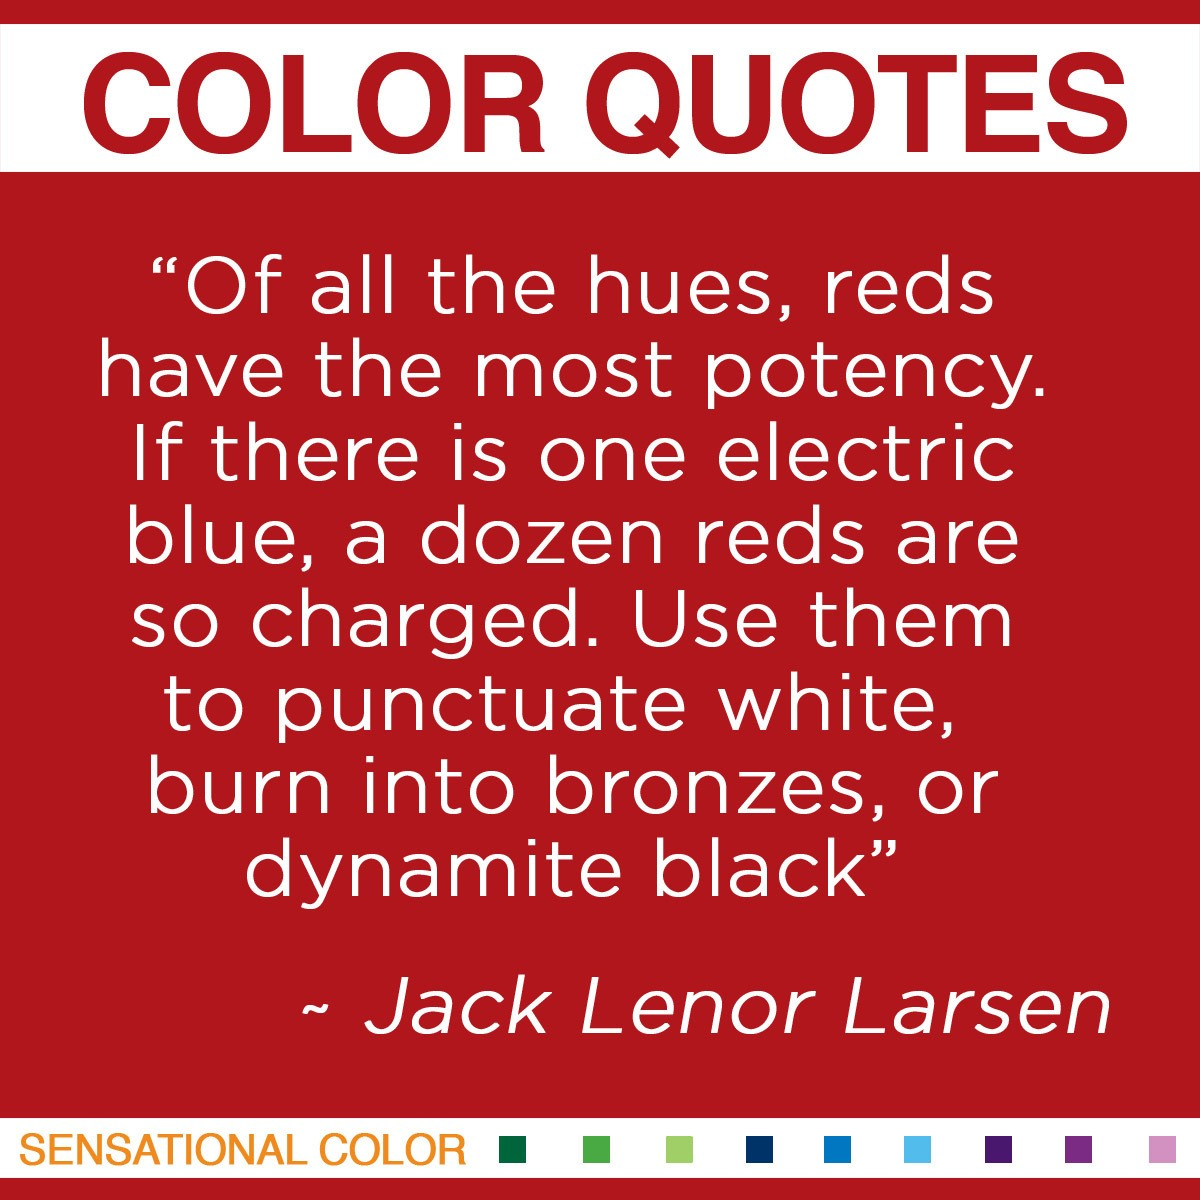 """""""Of all the hues, reds have the most potency. If there is one electric blue, a dozen reds are so charged. Use them to punctuate white, burn into bronzes, or dynamite black."""" - Jack Lenor Larsen"""